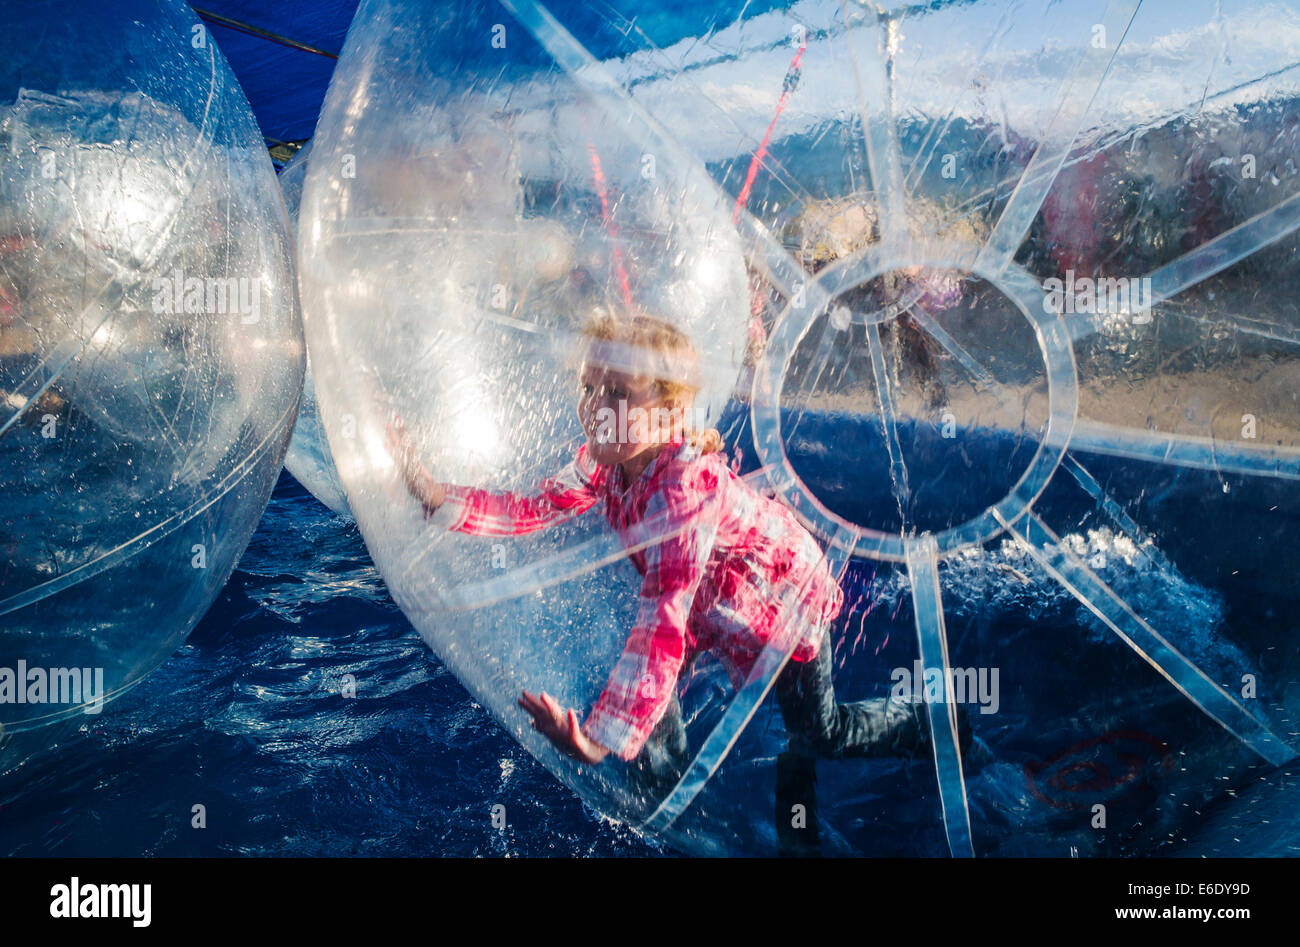 Children play in Water Bubbles, large inflated balls floating in a pool of water, Chaffee County Fair, Colorado, - Stock Image